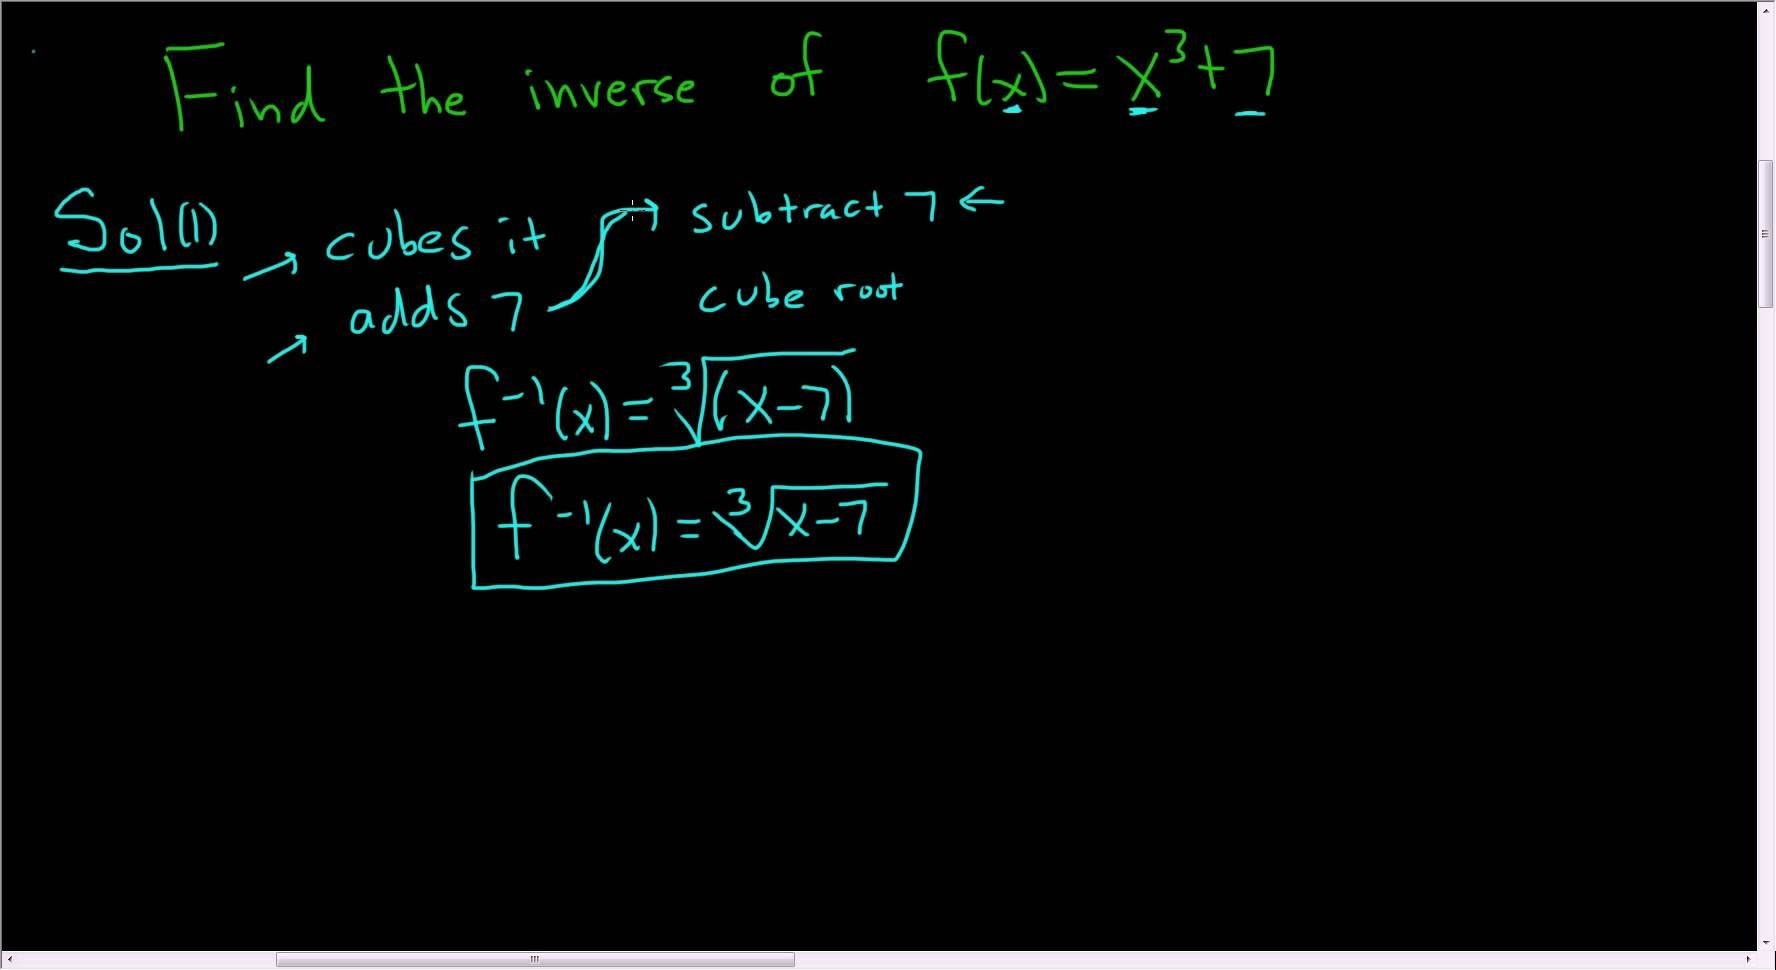 Inverse Of Cubic Function Intuitive Solution And Algebraic